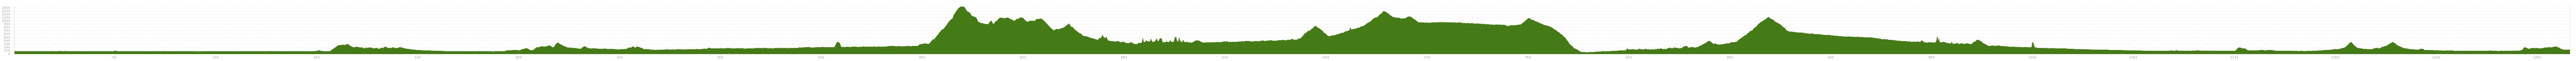 Elevation profile Cycle Tour Serbian-Revival